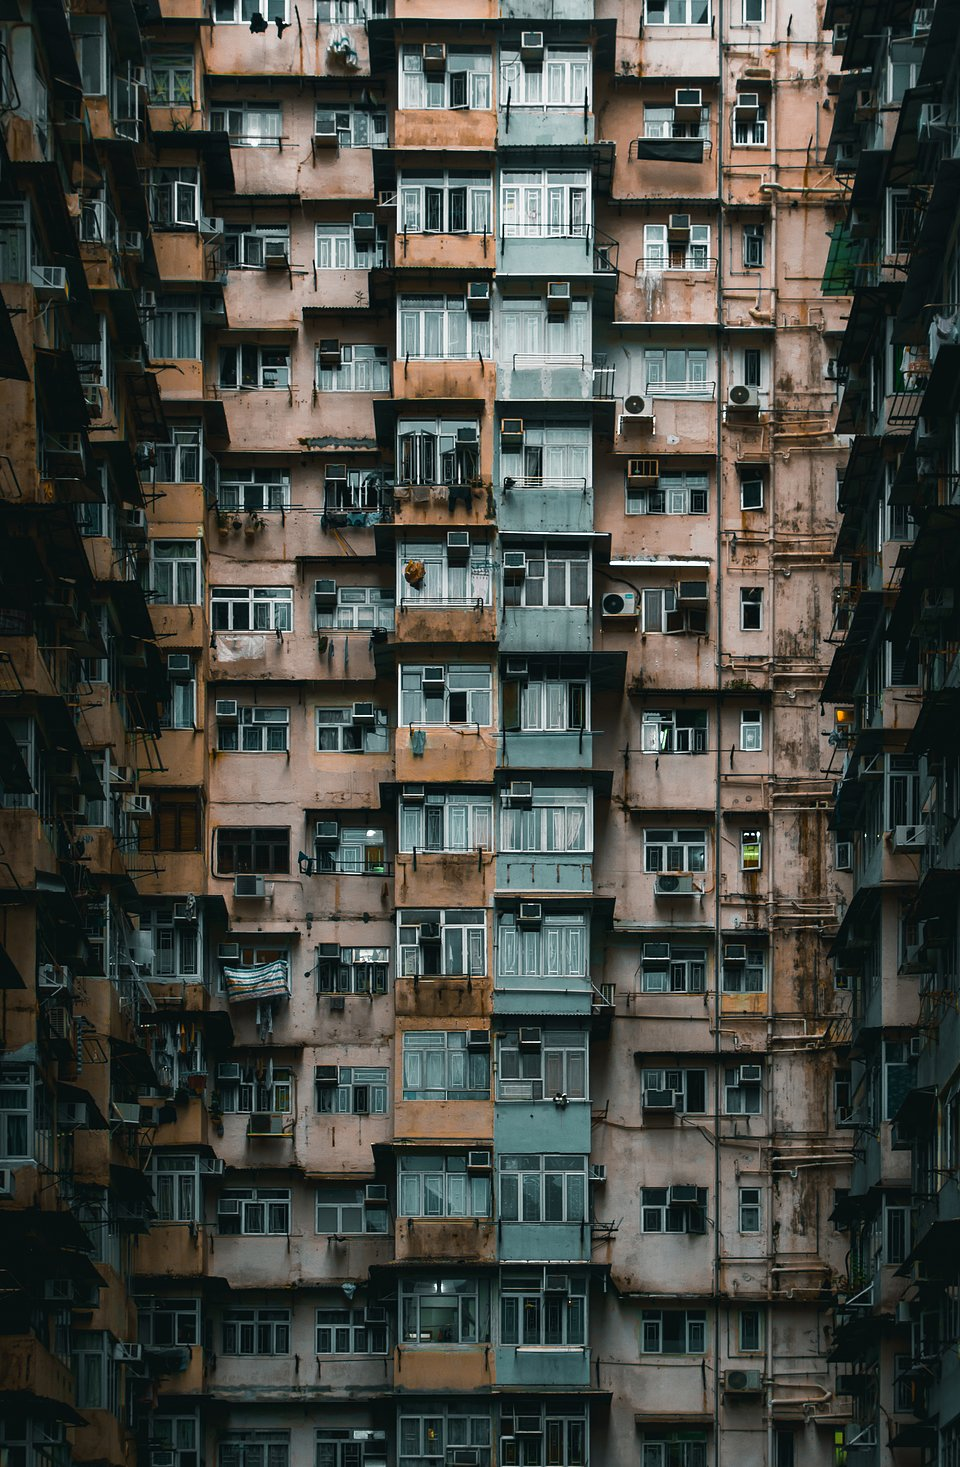 Location: Quarry Bay, Hong Kong